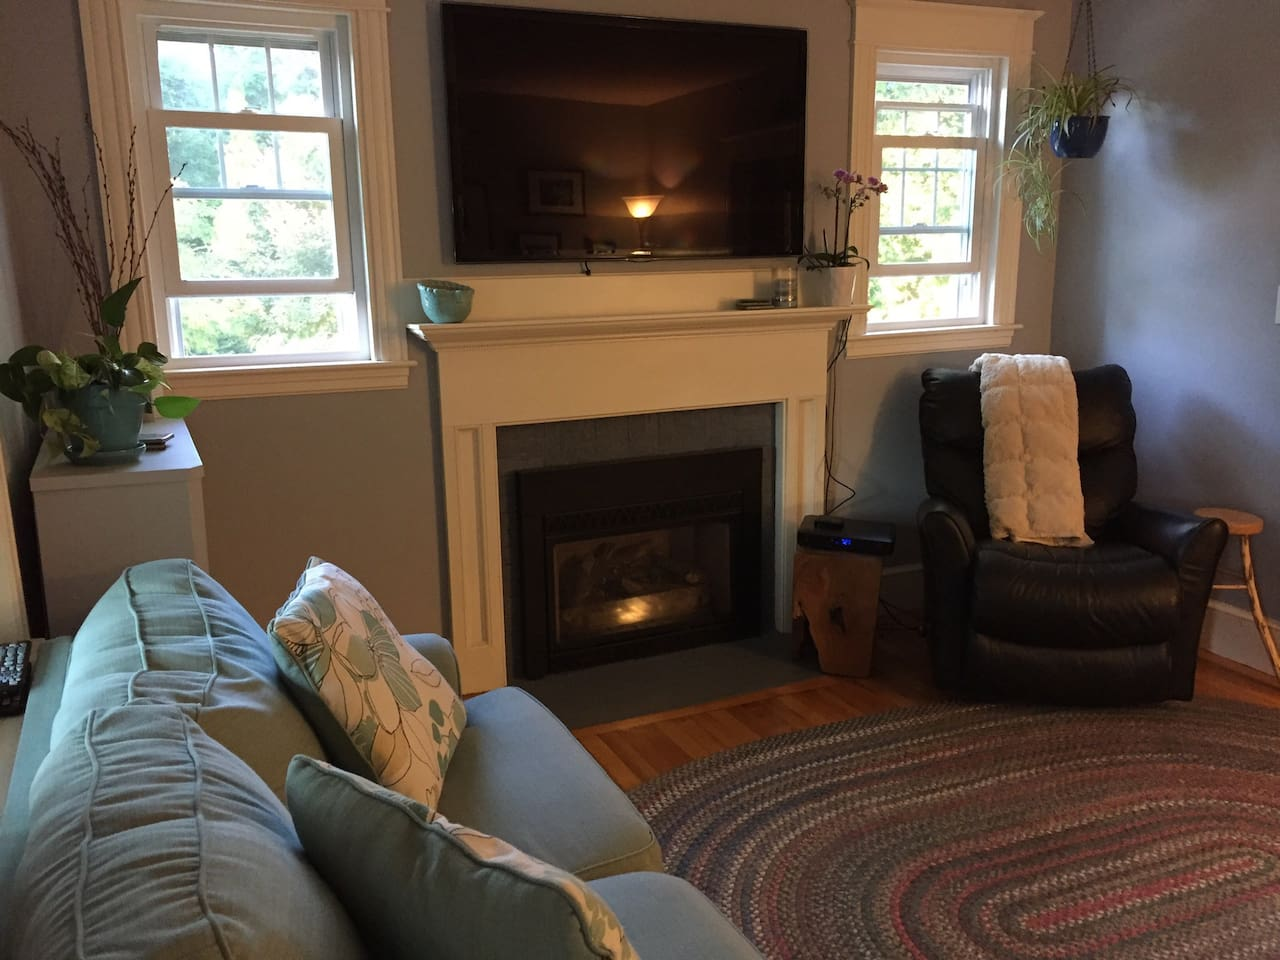 willard beach cottage houses for rent in south portland maine